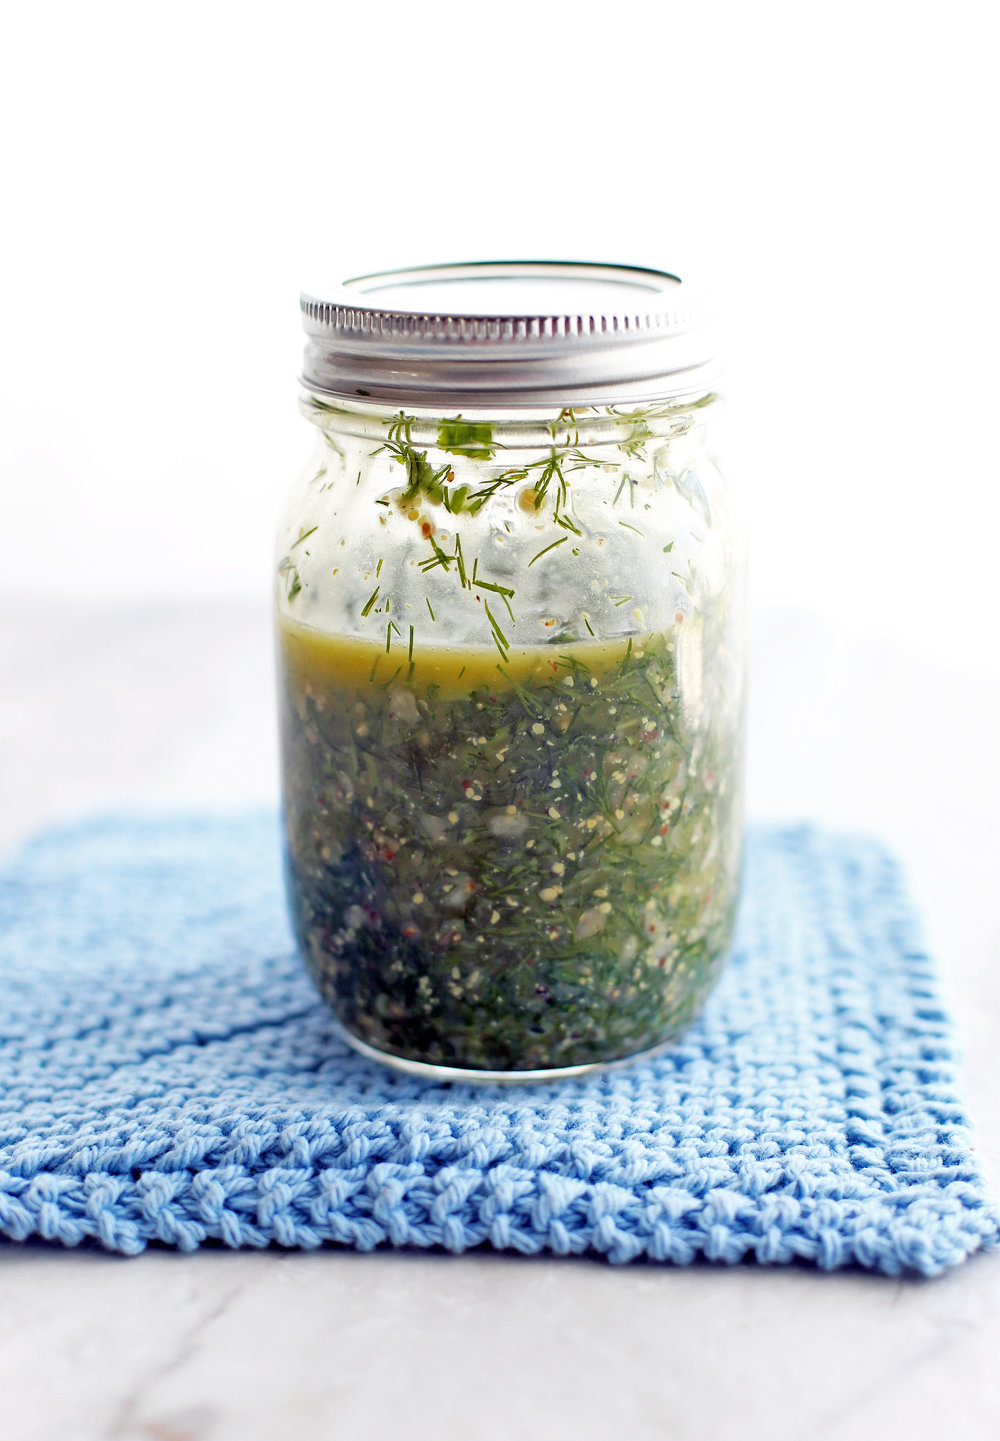 A mason jar containing olive oil, red wine vinegar, dill, parsley. garlic, dijon mustard, salt, and pepper shaken together to form a vinaigrette.